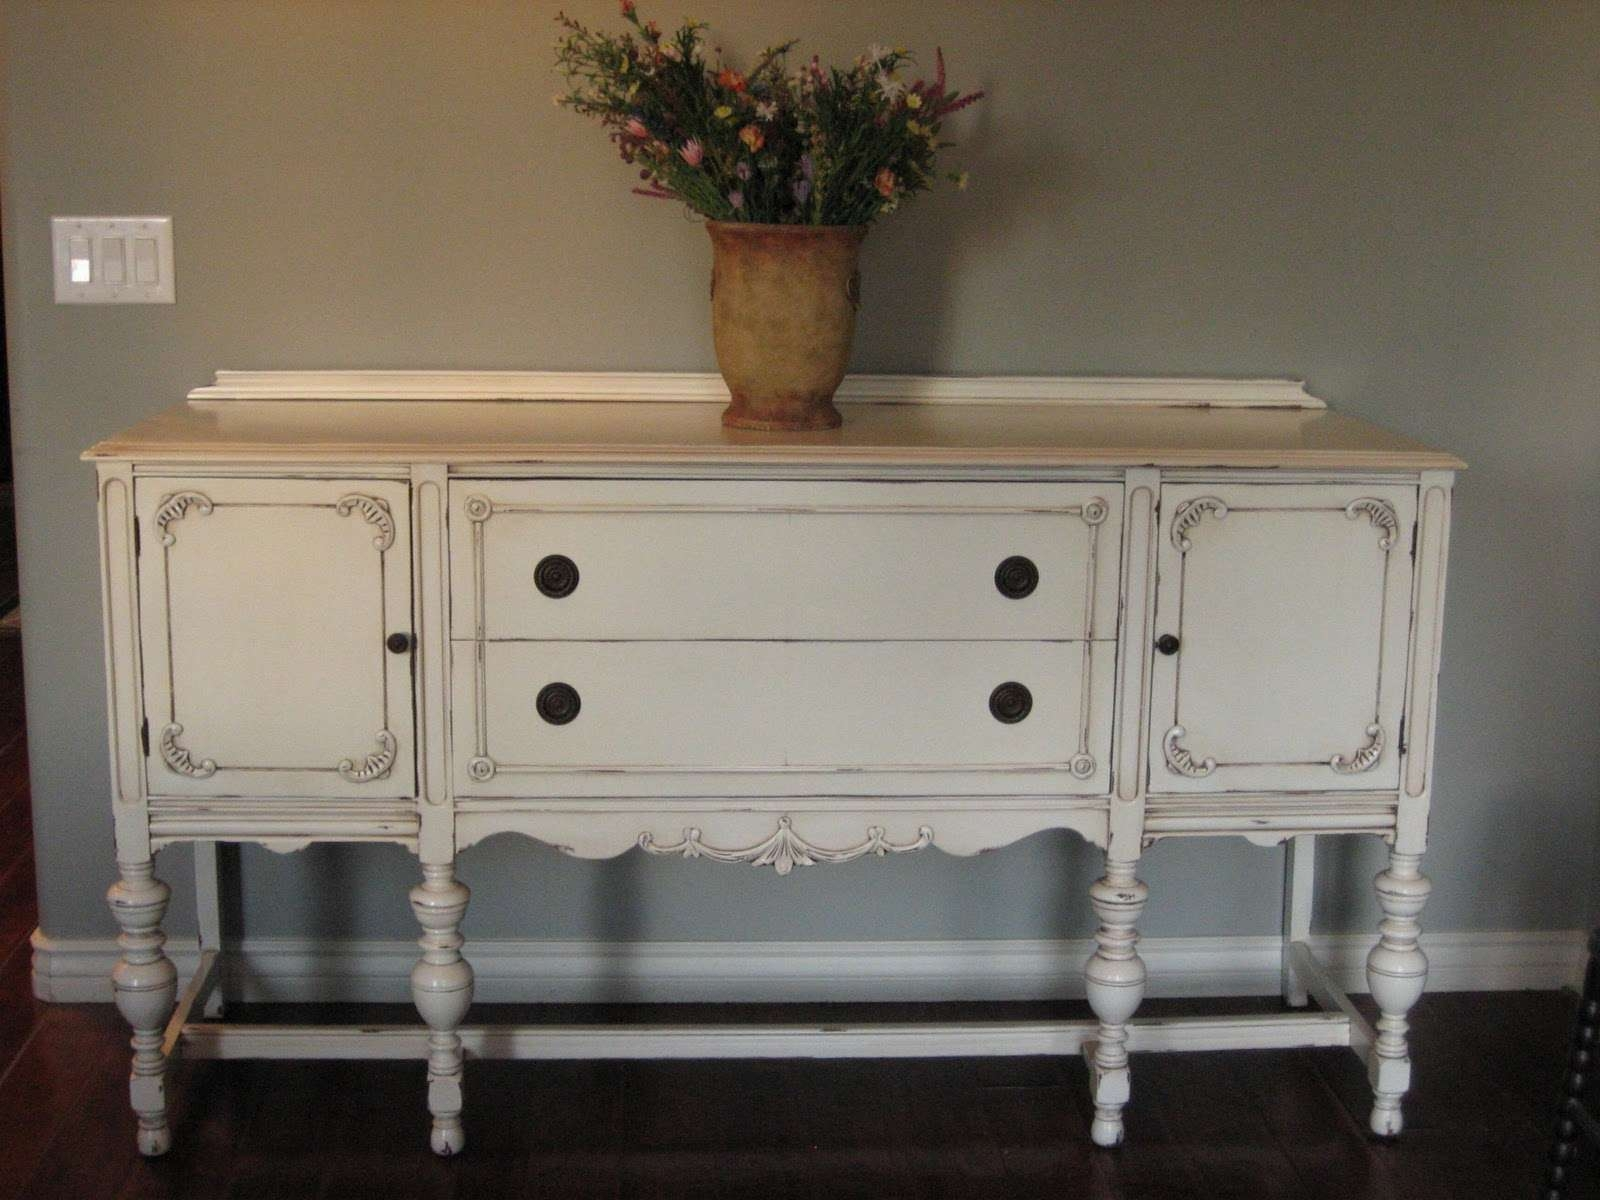 Inspirational Antique White Sideboard – Bjdgjy Within Large White Sideboards (View 8 of 20)